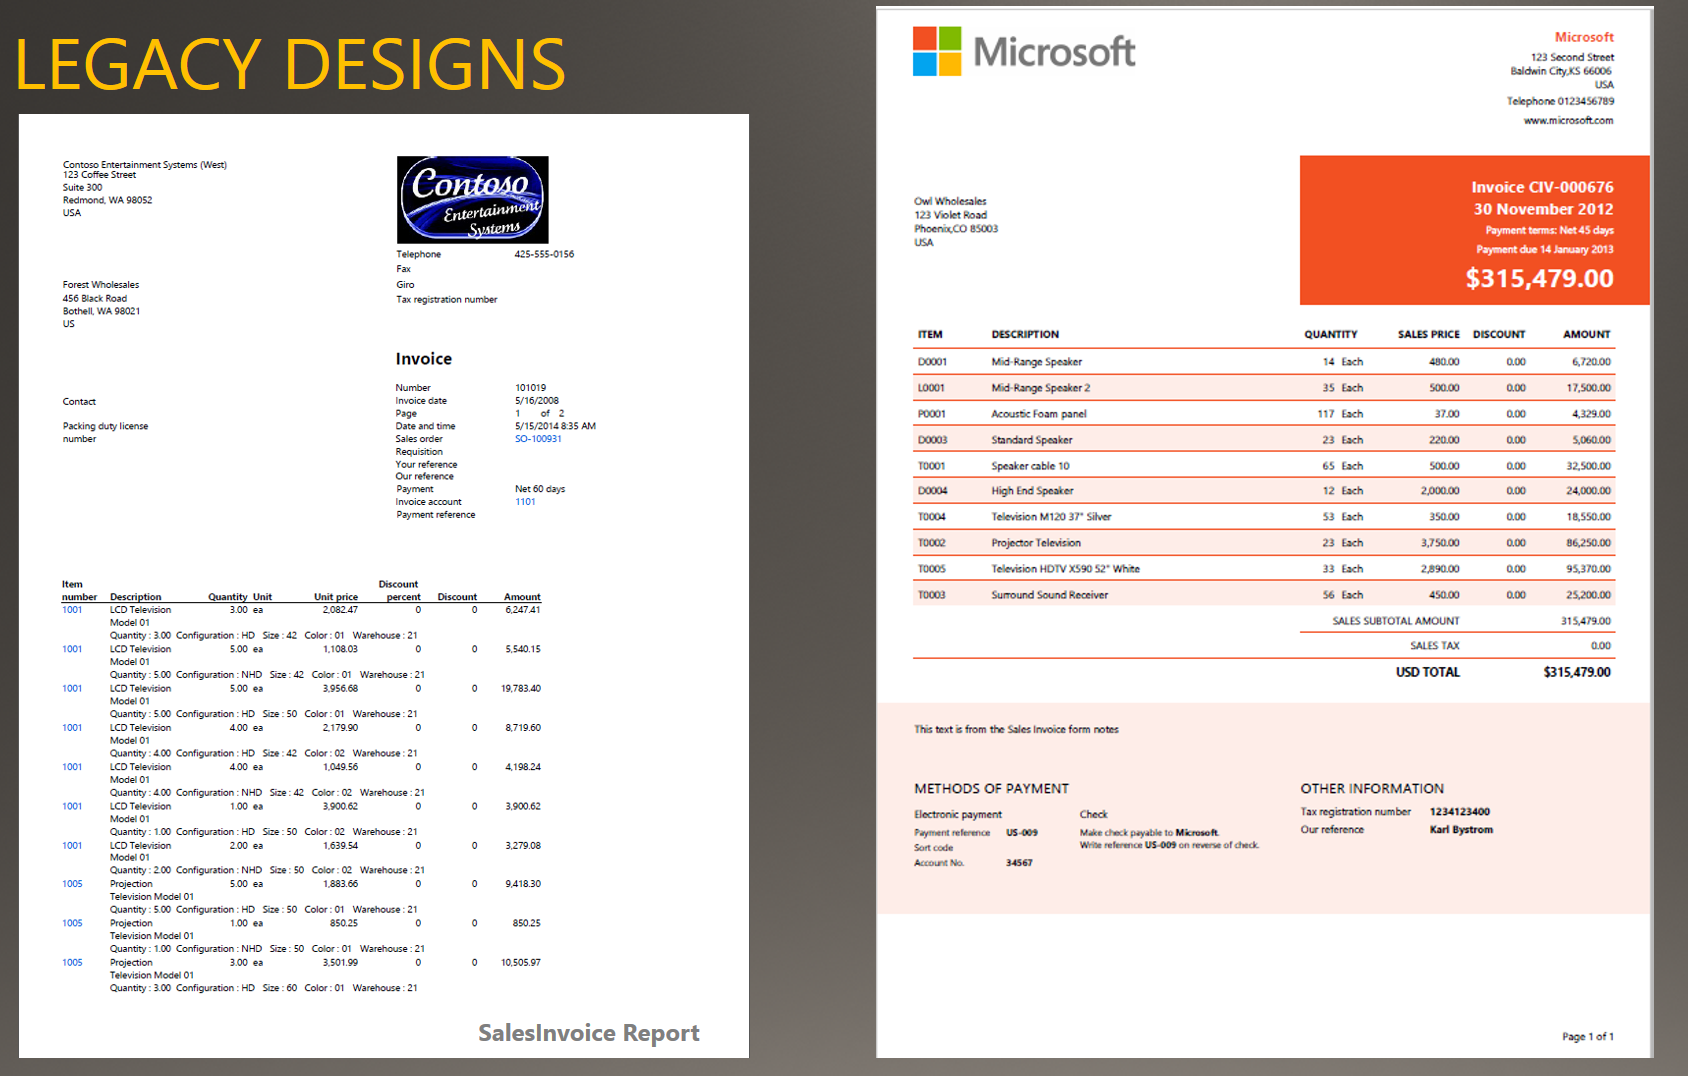 examples of an earlier sales invoice design and a modern sales invoice design